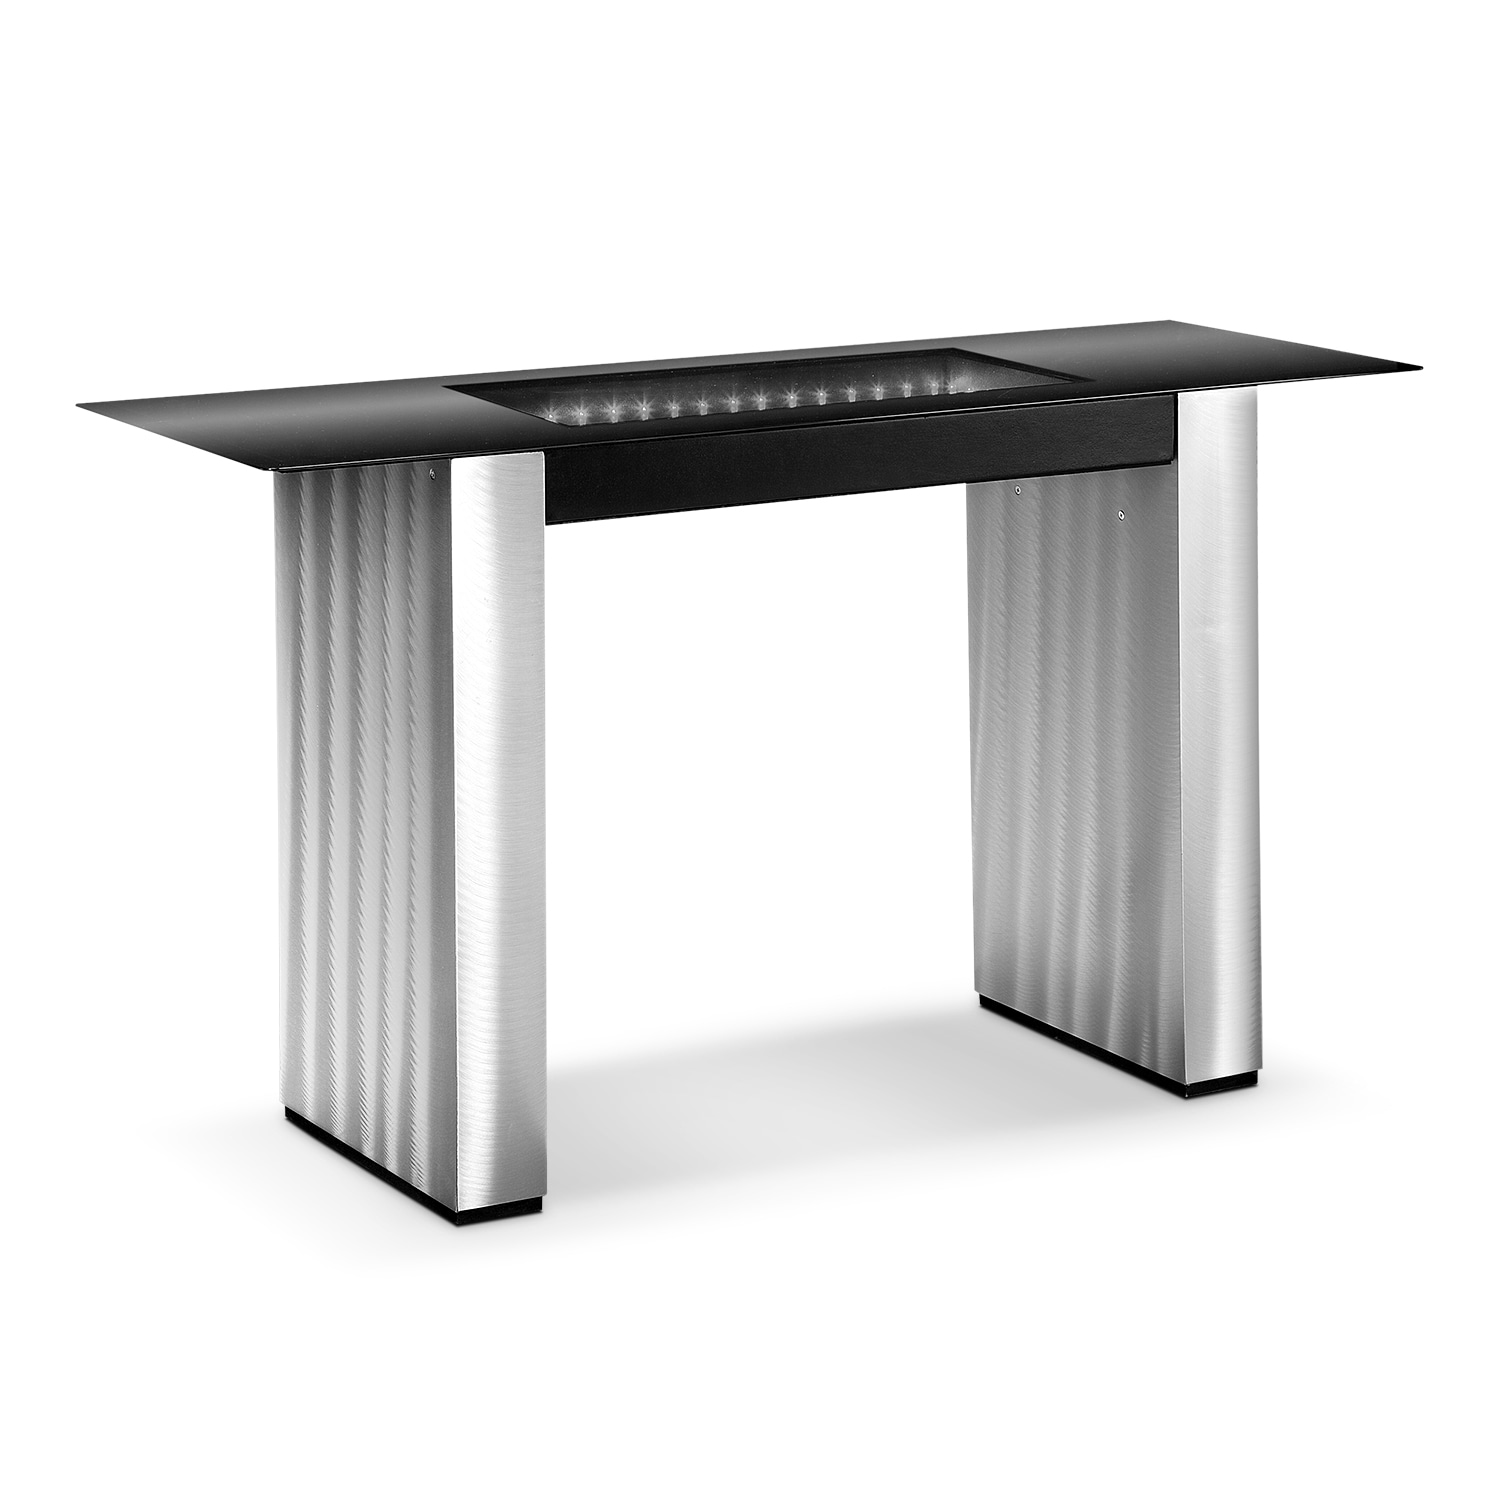 City Lights Sofa Table - Silver and Black